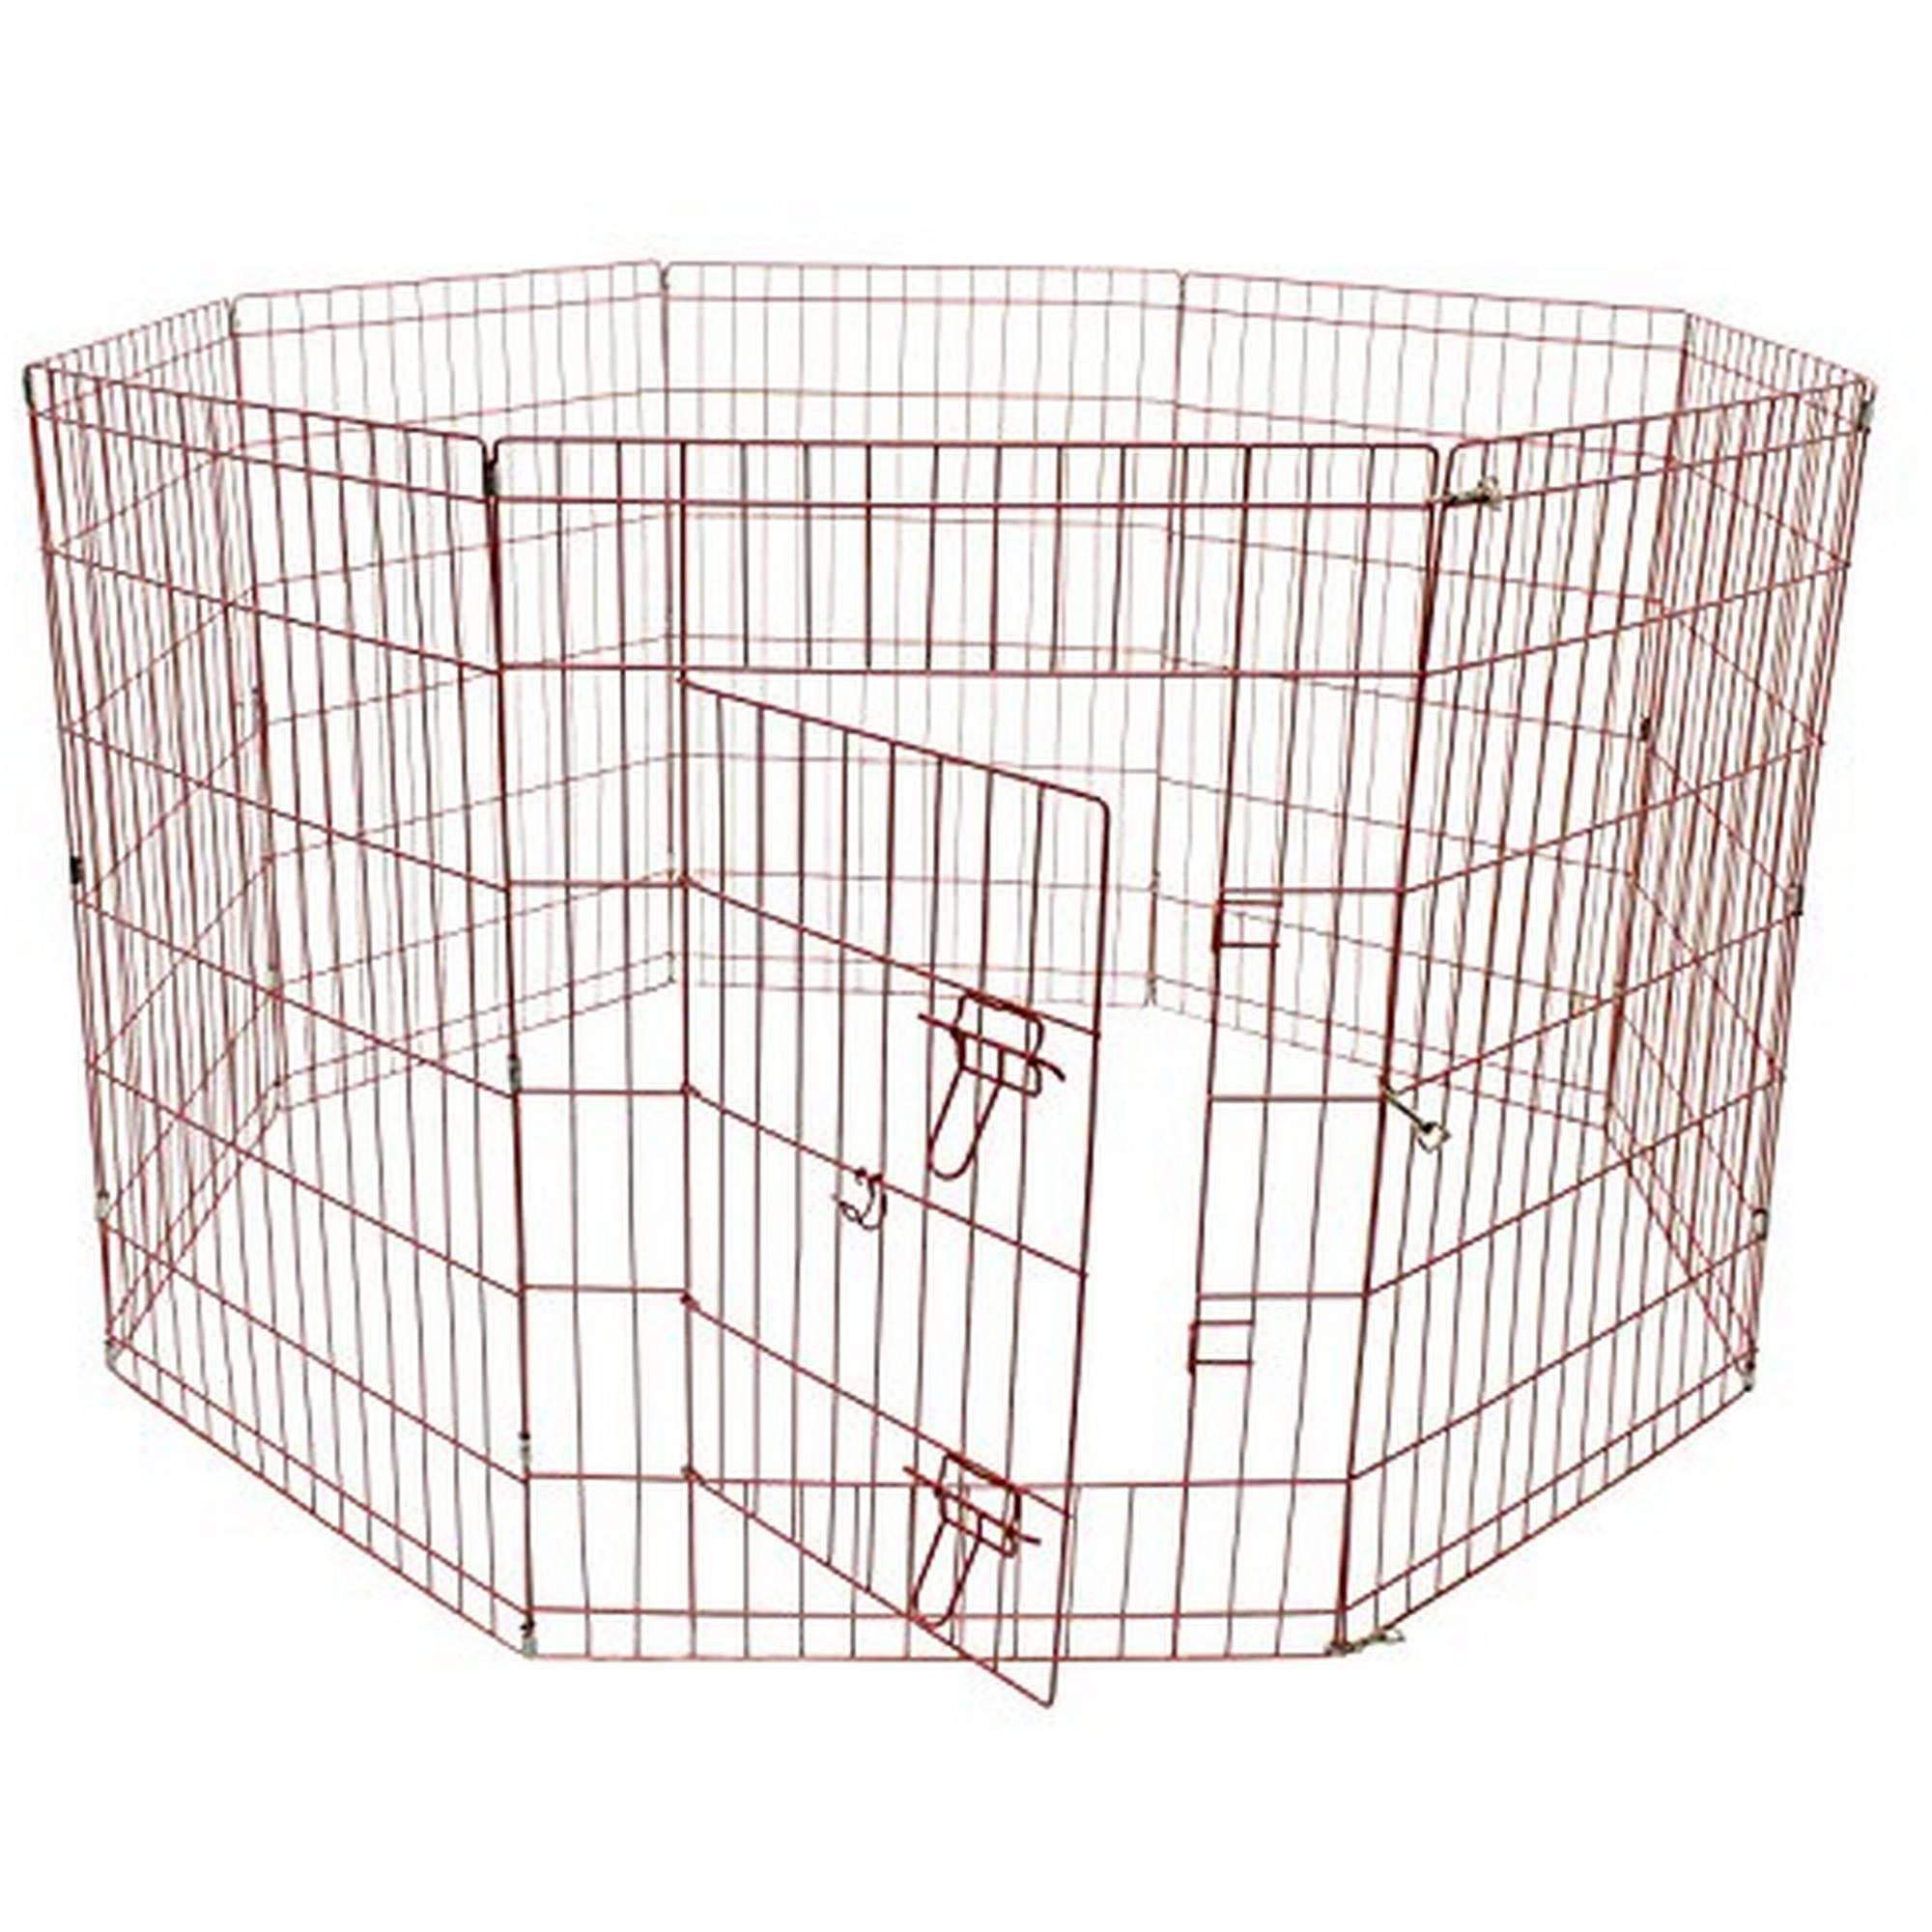 Aleko SDK-24P Dog Playpen Pet Kennel Pen Exercise Cage Fence, 8-Panel, Pink